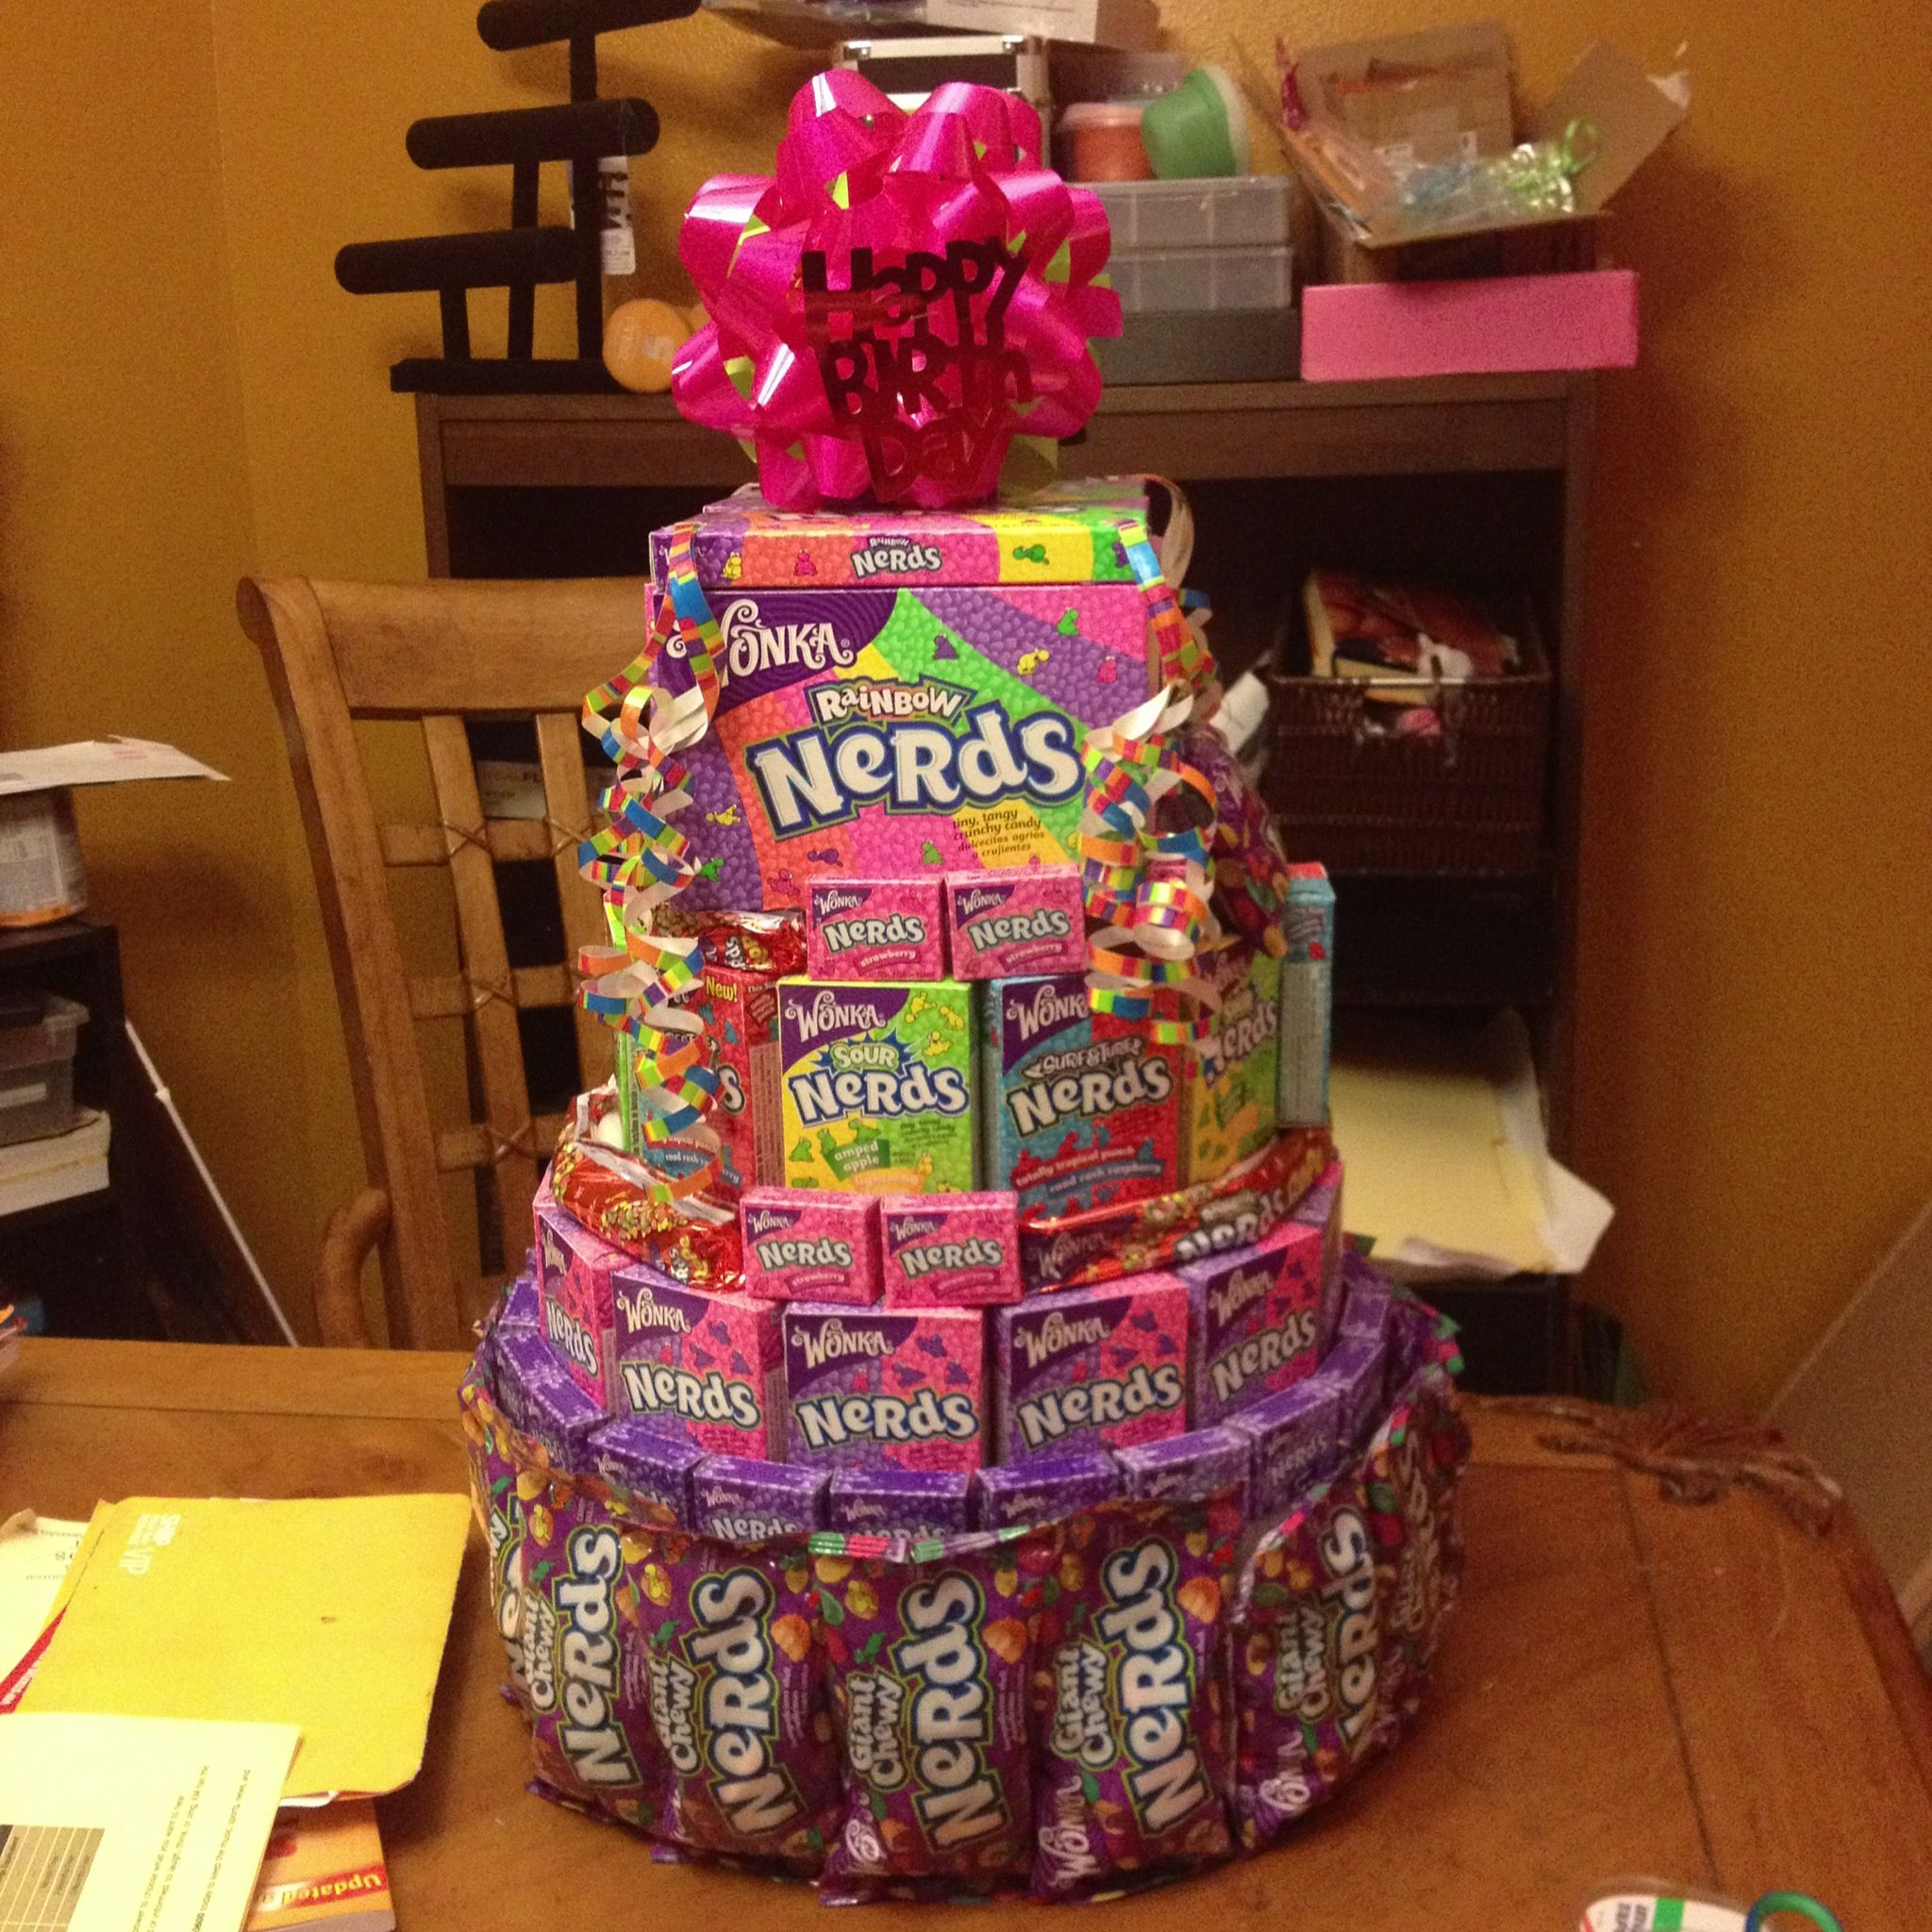 Stupendous Nerds Candy Cake Get Me This Cake Pleaseee With Images Nerds Funny Birthday Cards Online Inifofree Goldxyz